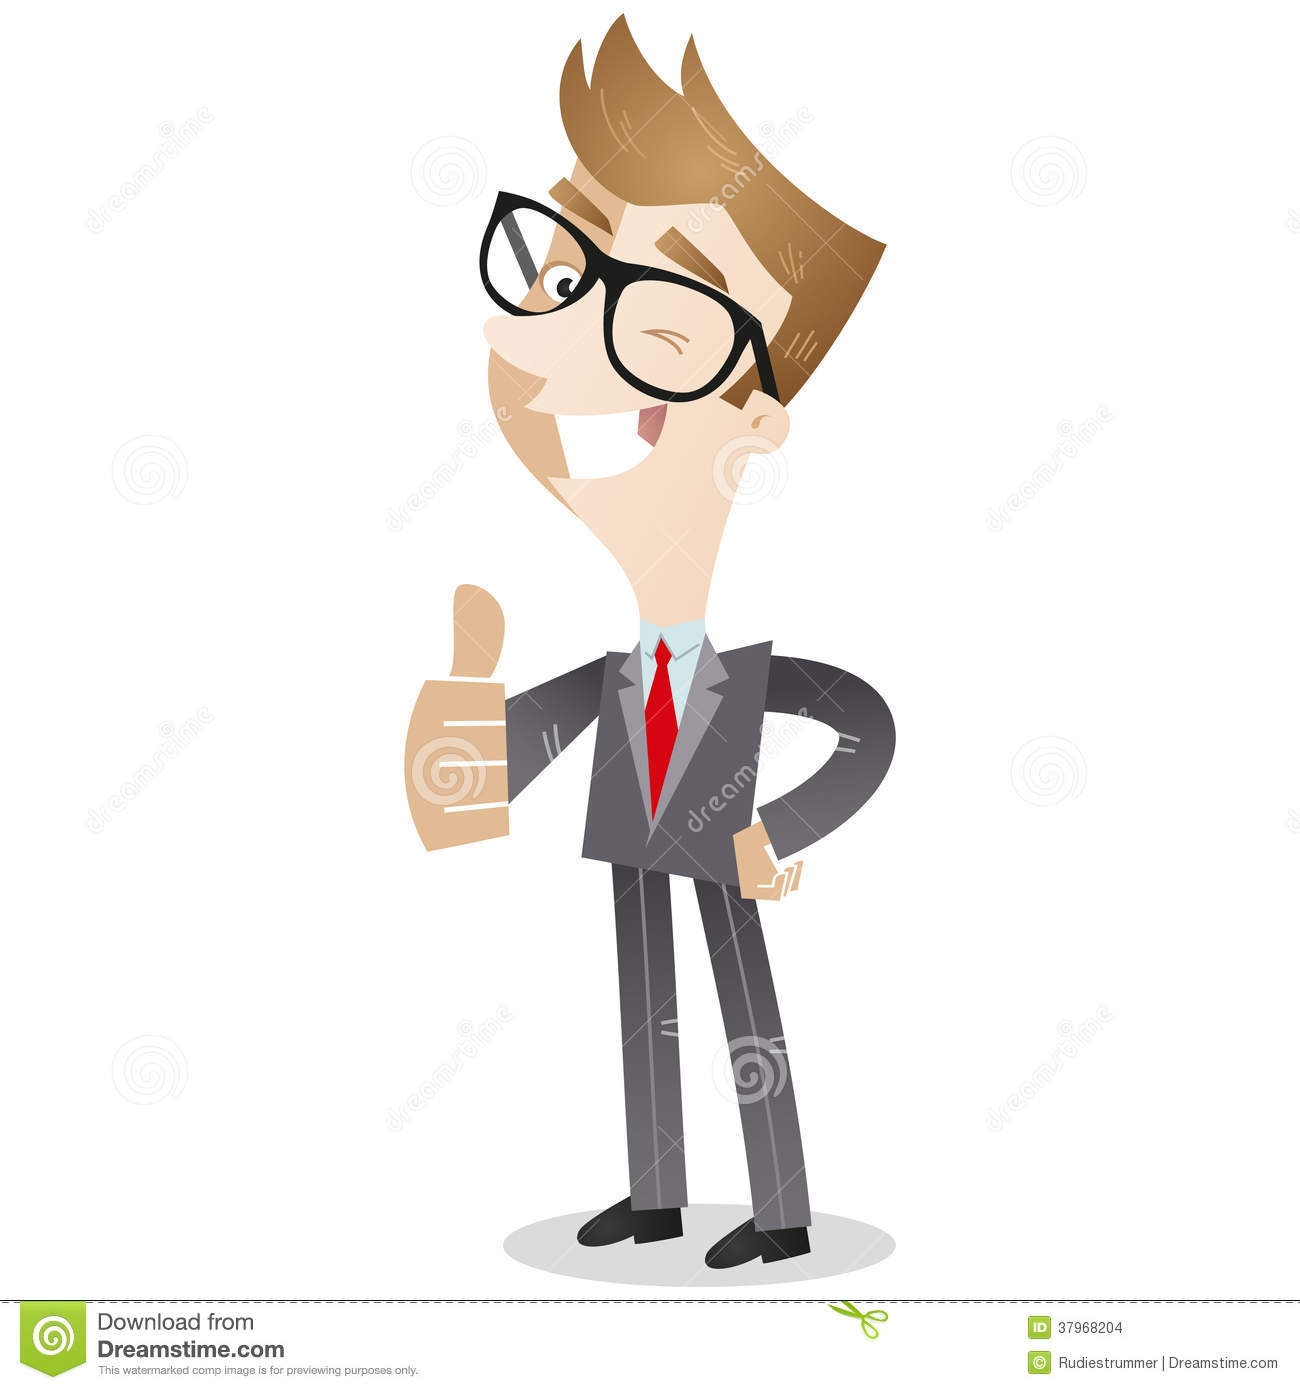 Man with thumbs up clipart clip art transparent stock Thumbs up person clipart - ClipartFest clip art transparent stock